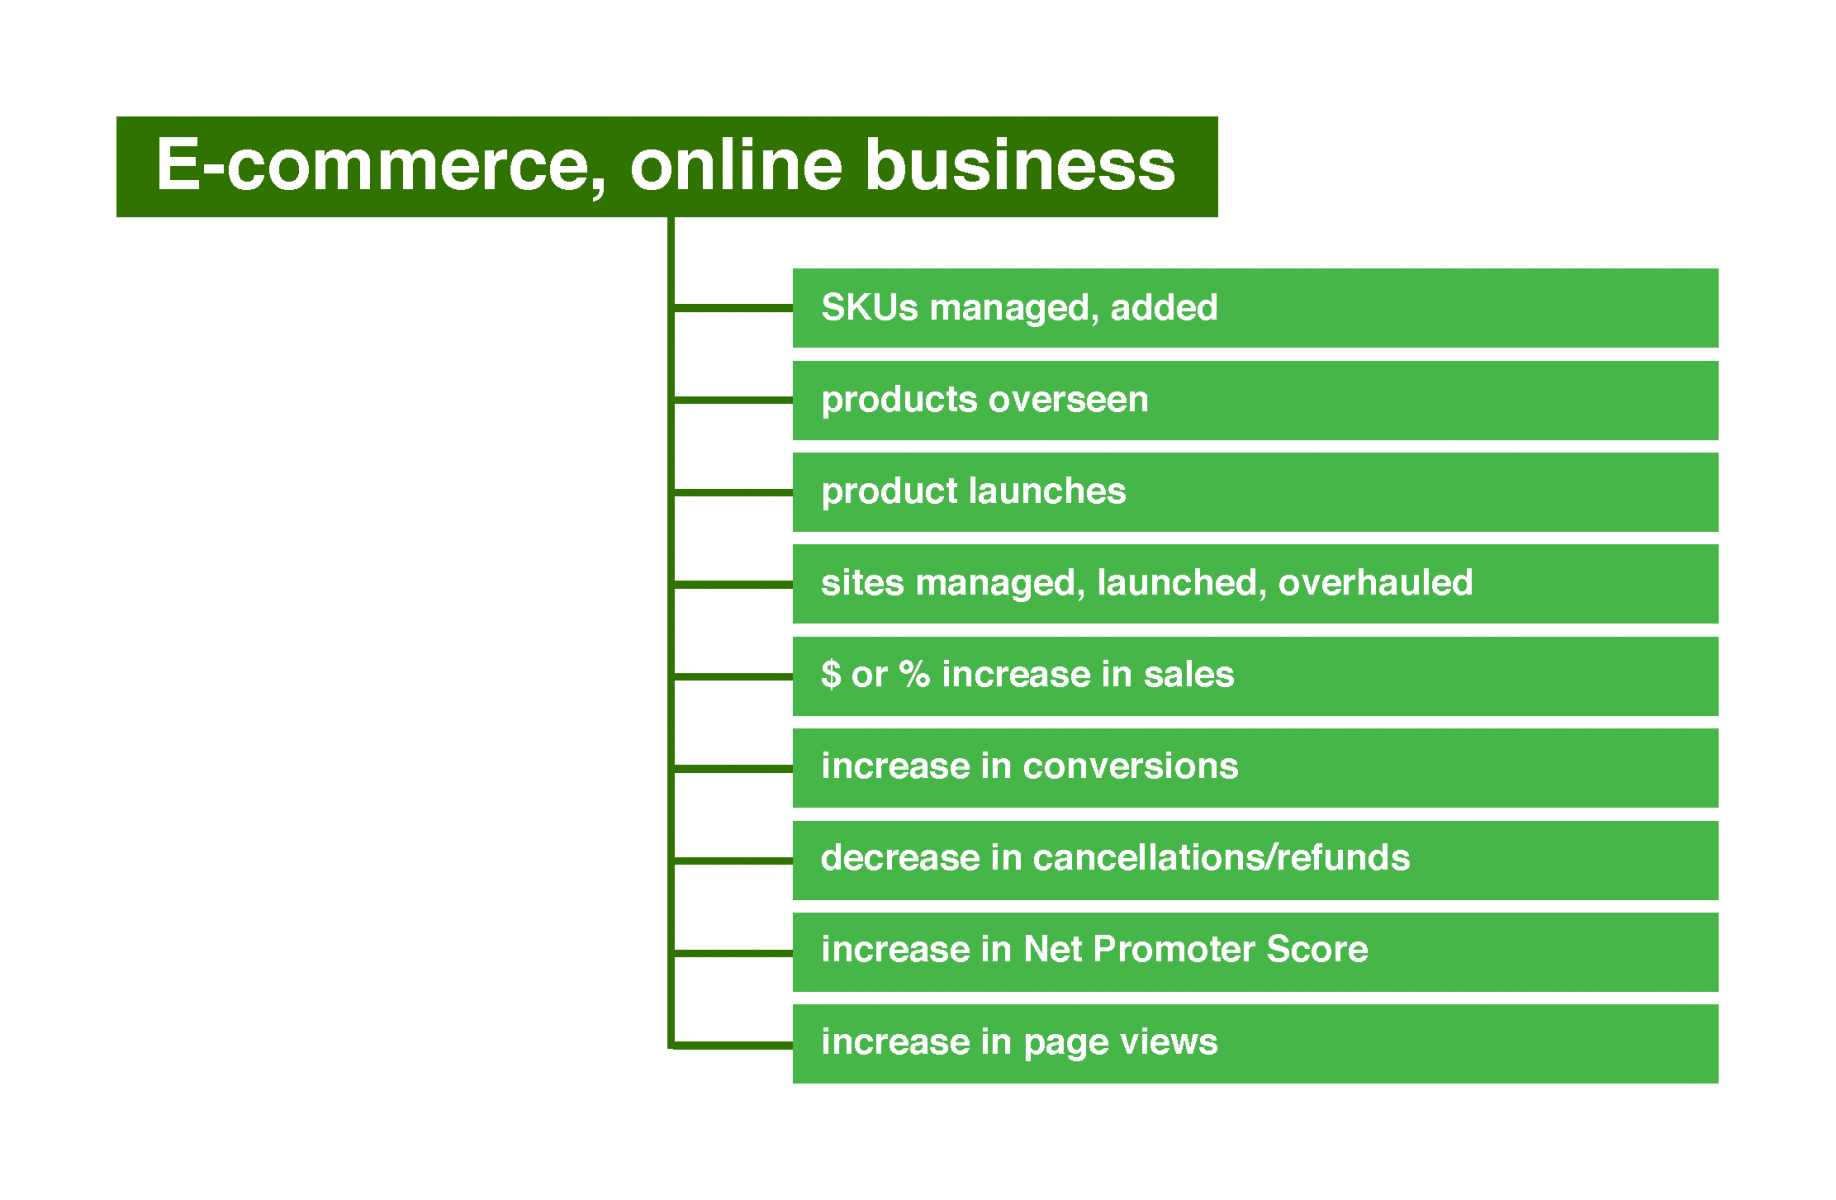 Potential numbers for e-commerce and online businesses